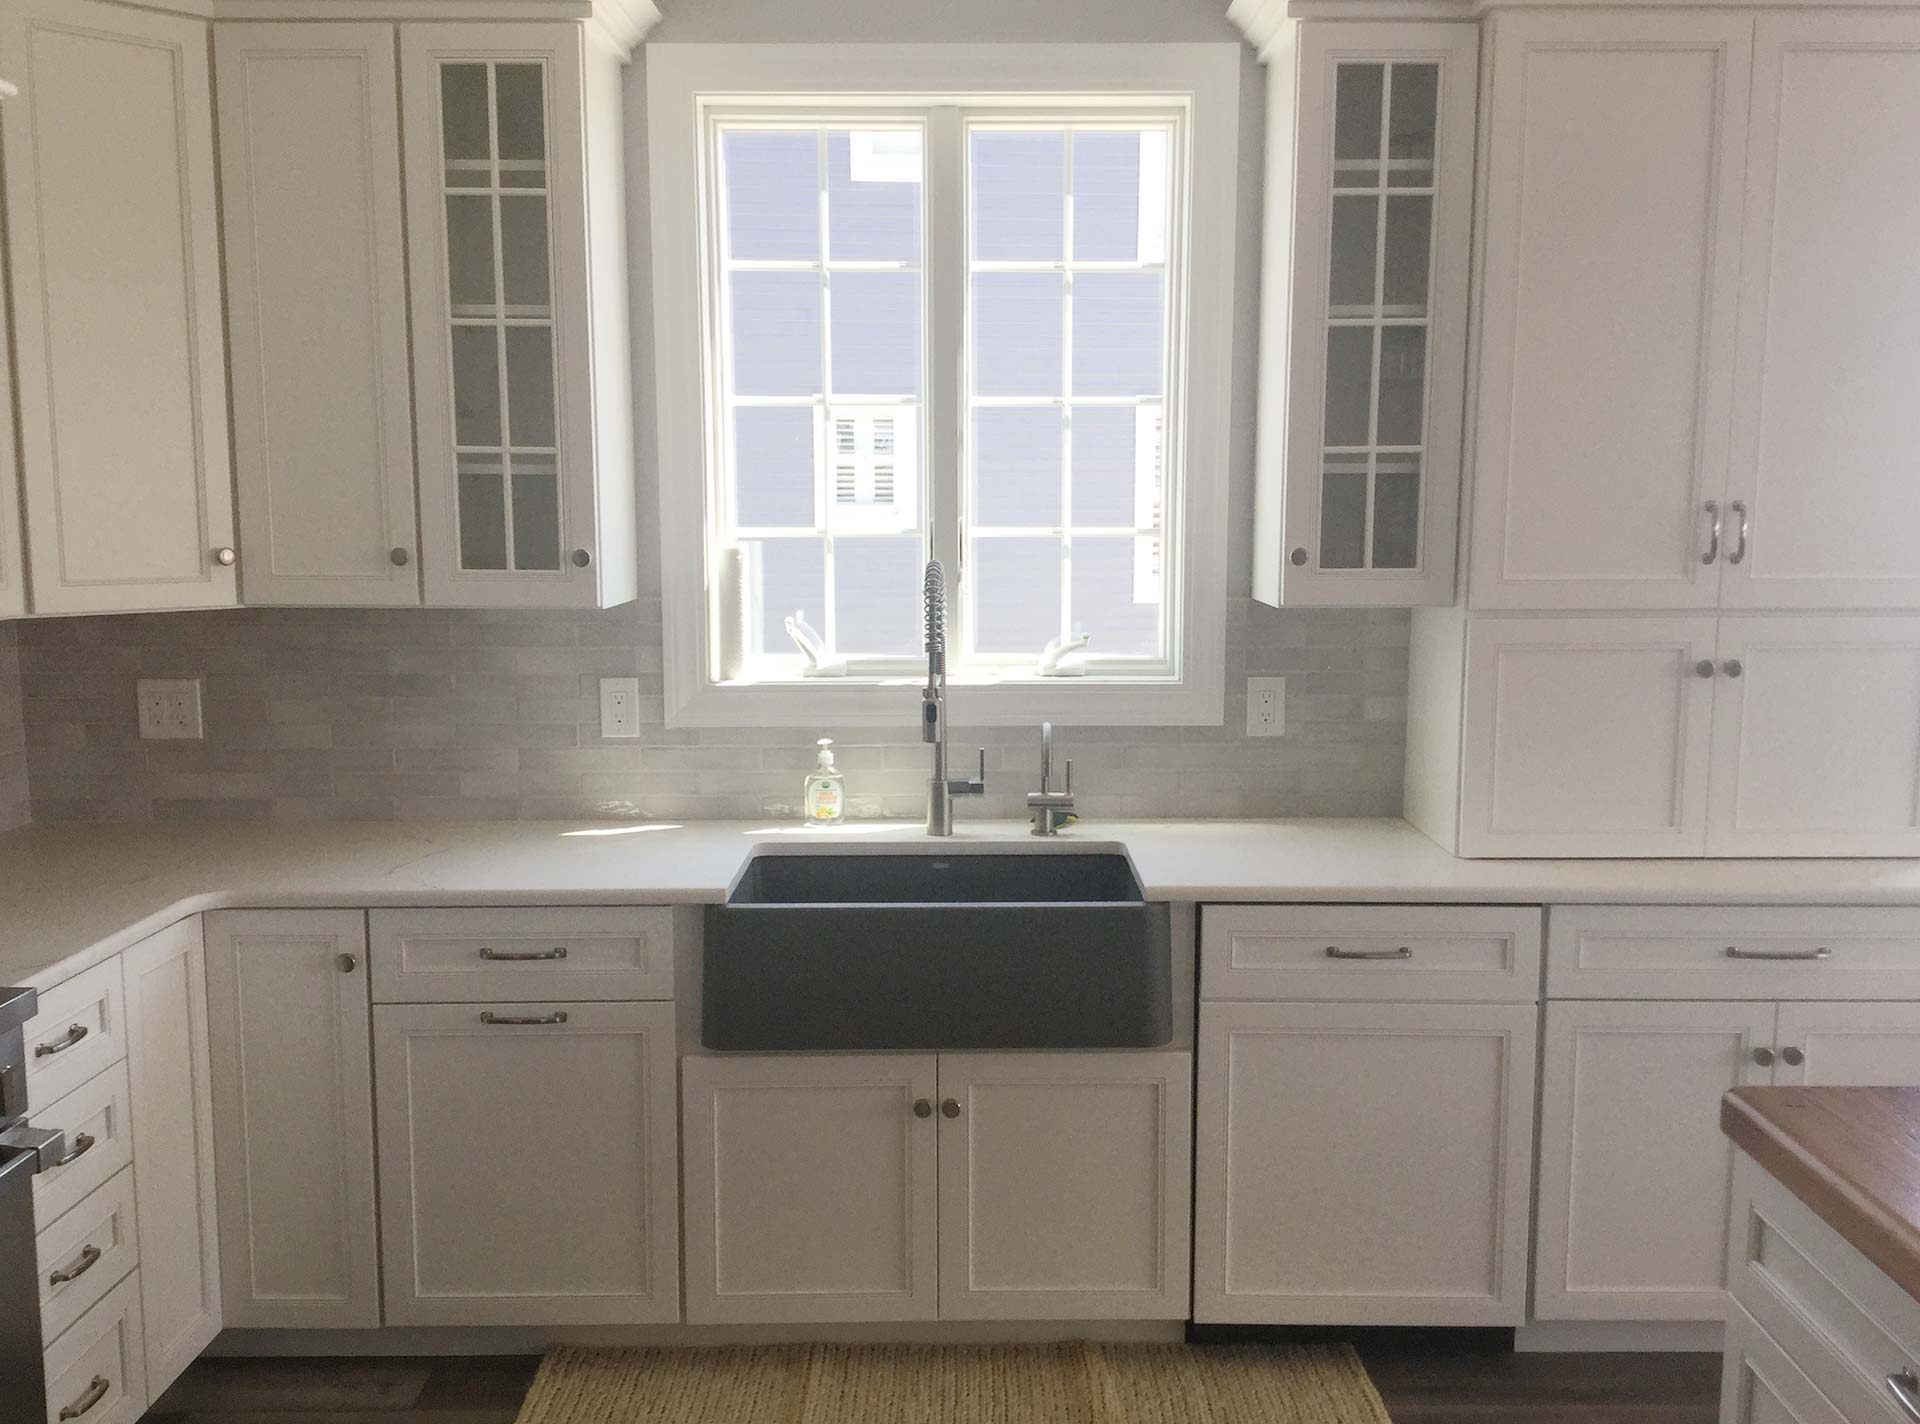 White custom cabinets and window